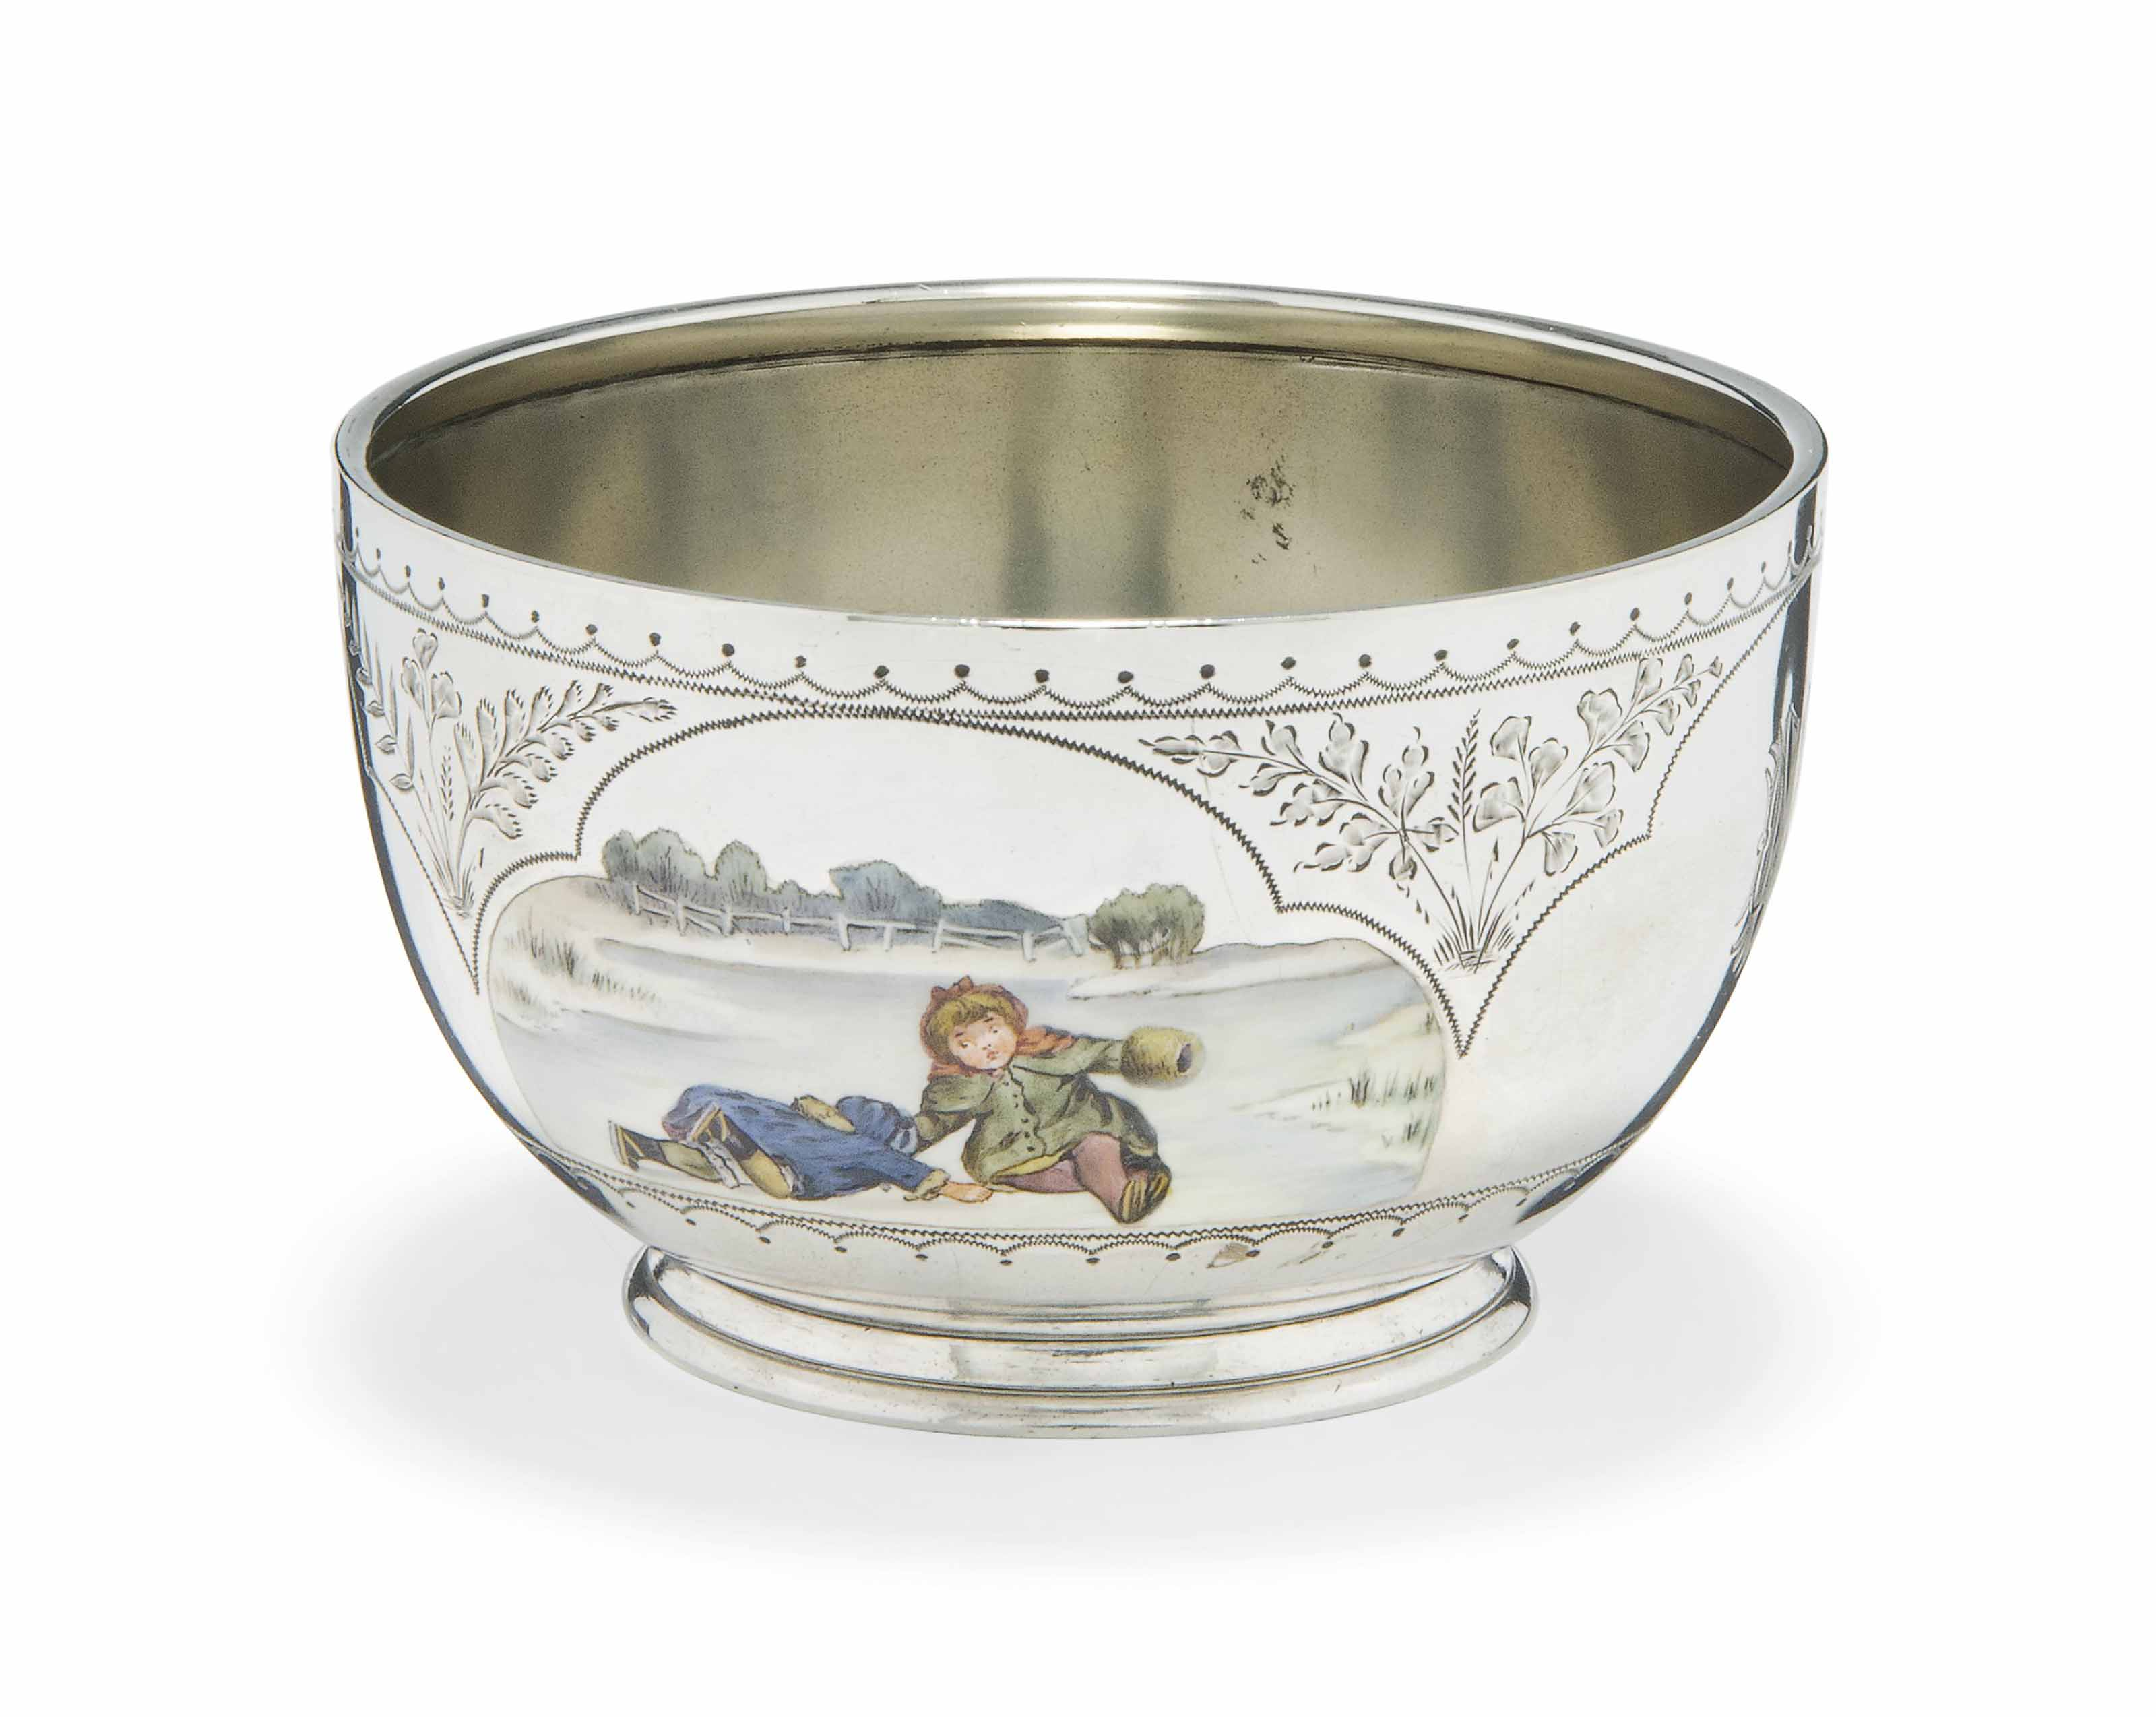 A VICTORIAN SILVER AND ENAMEL